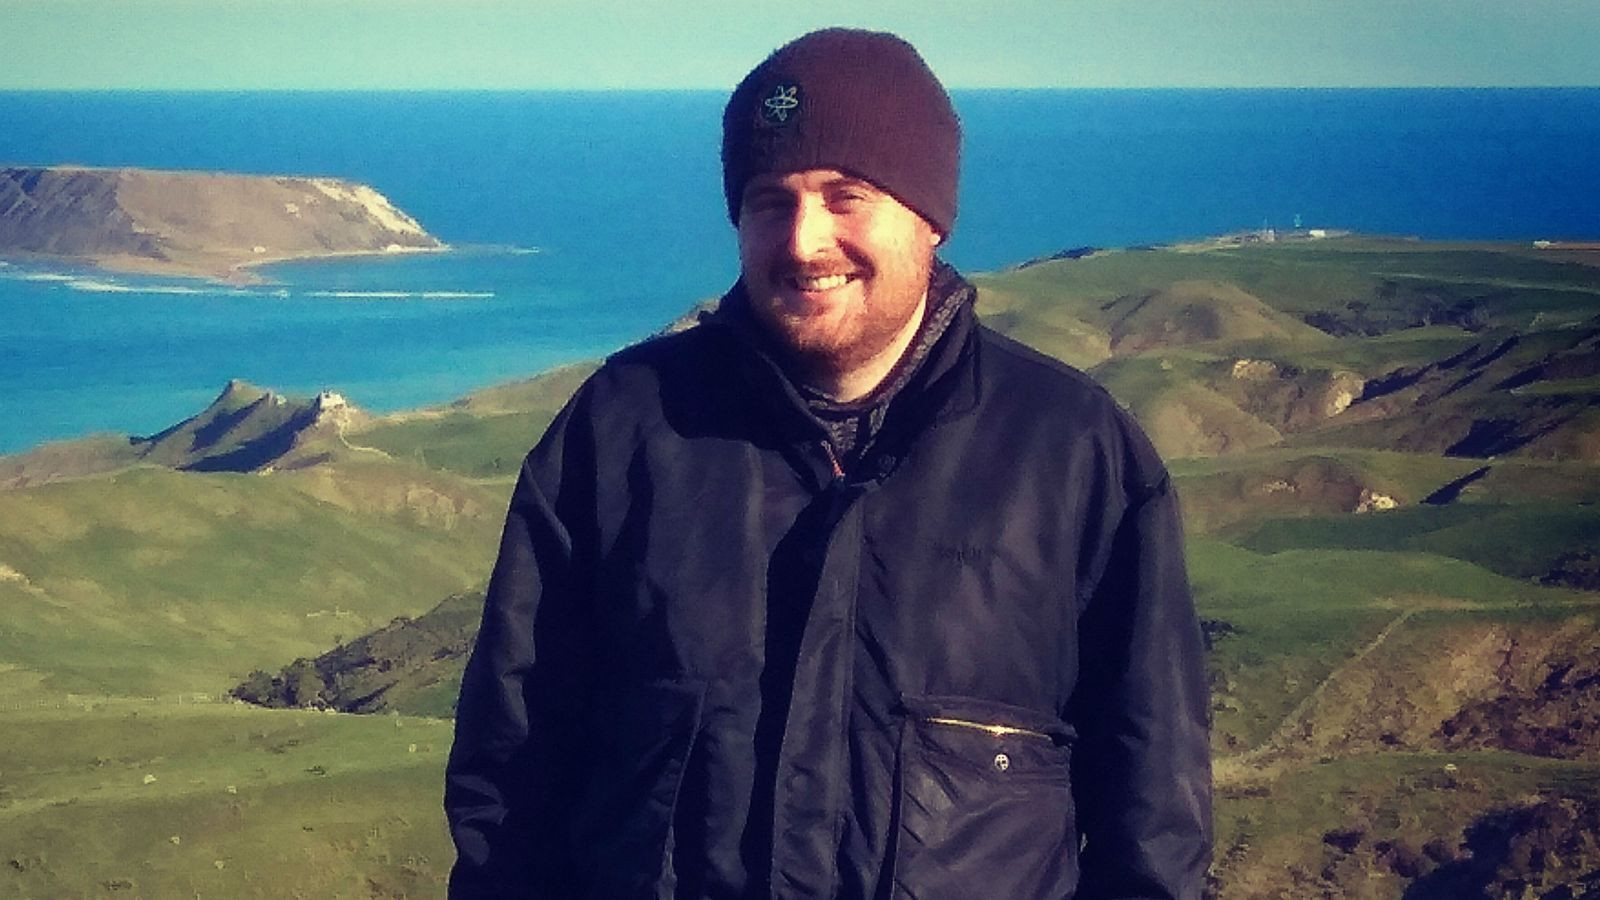 Harry, wearing a black jacket and beanie, stands in front of green hills and blue ocean. A small island can be seen in the distance.